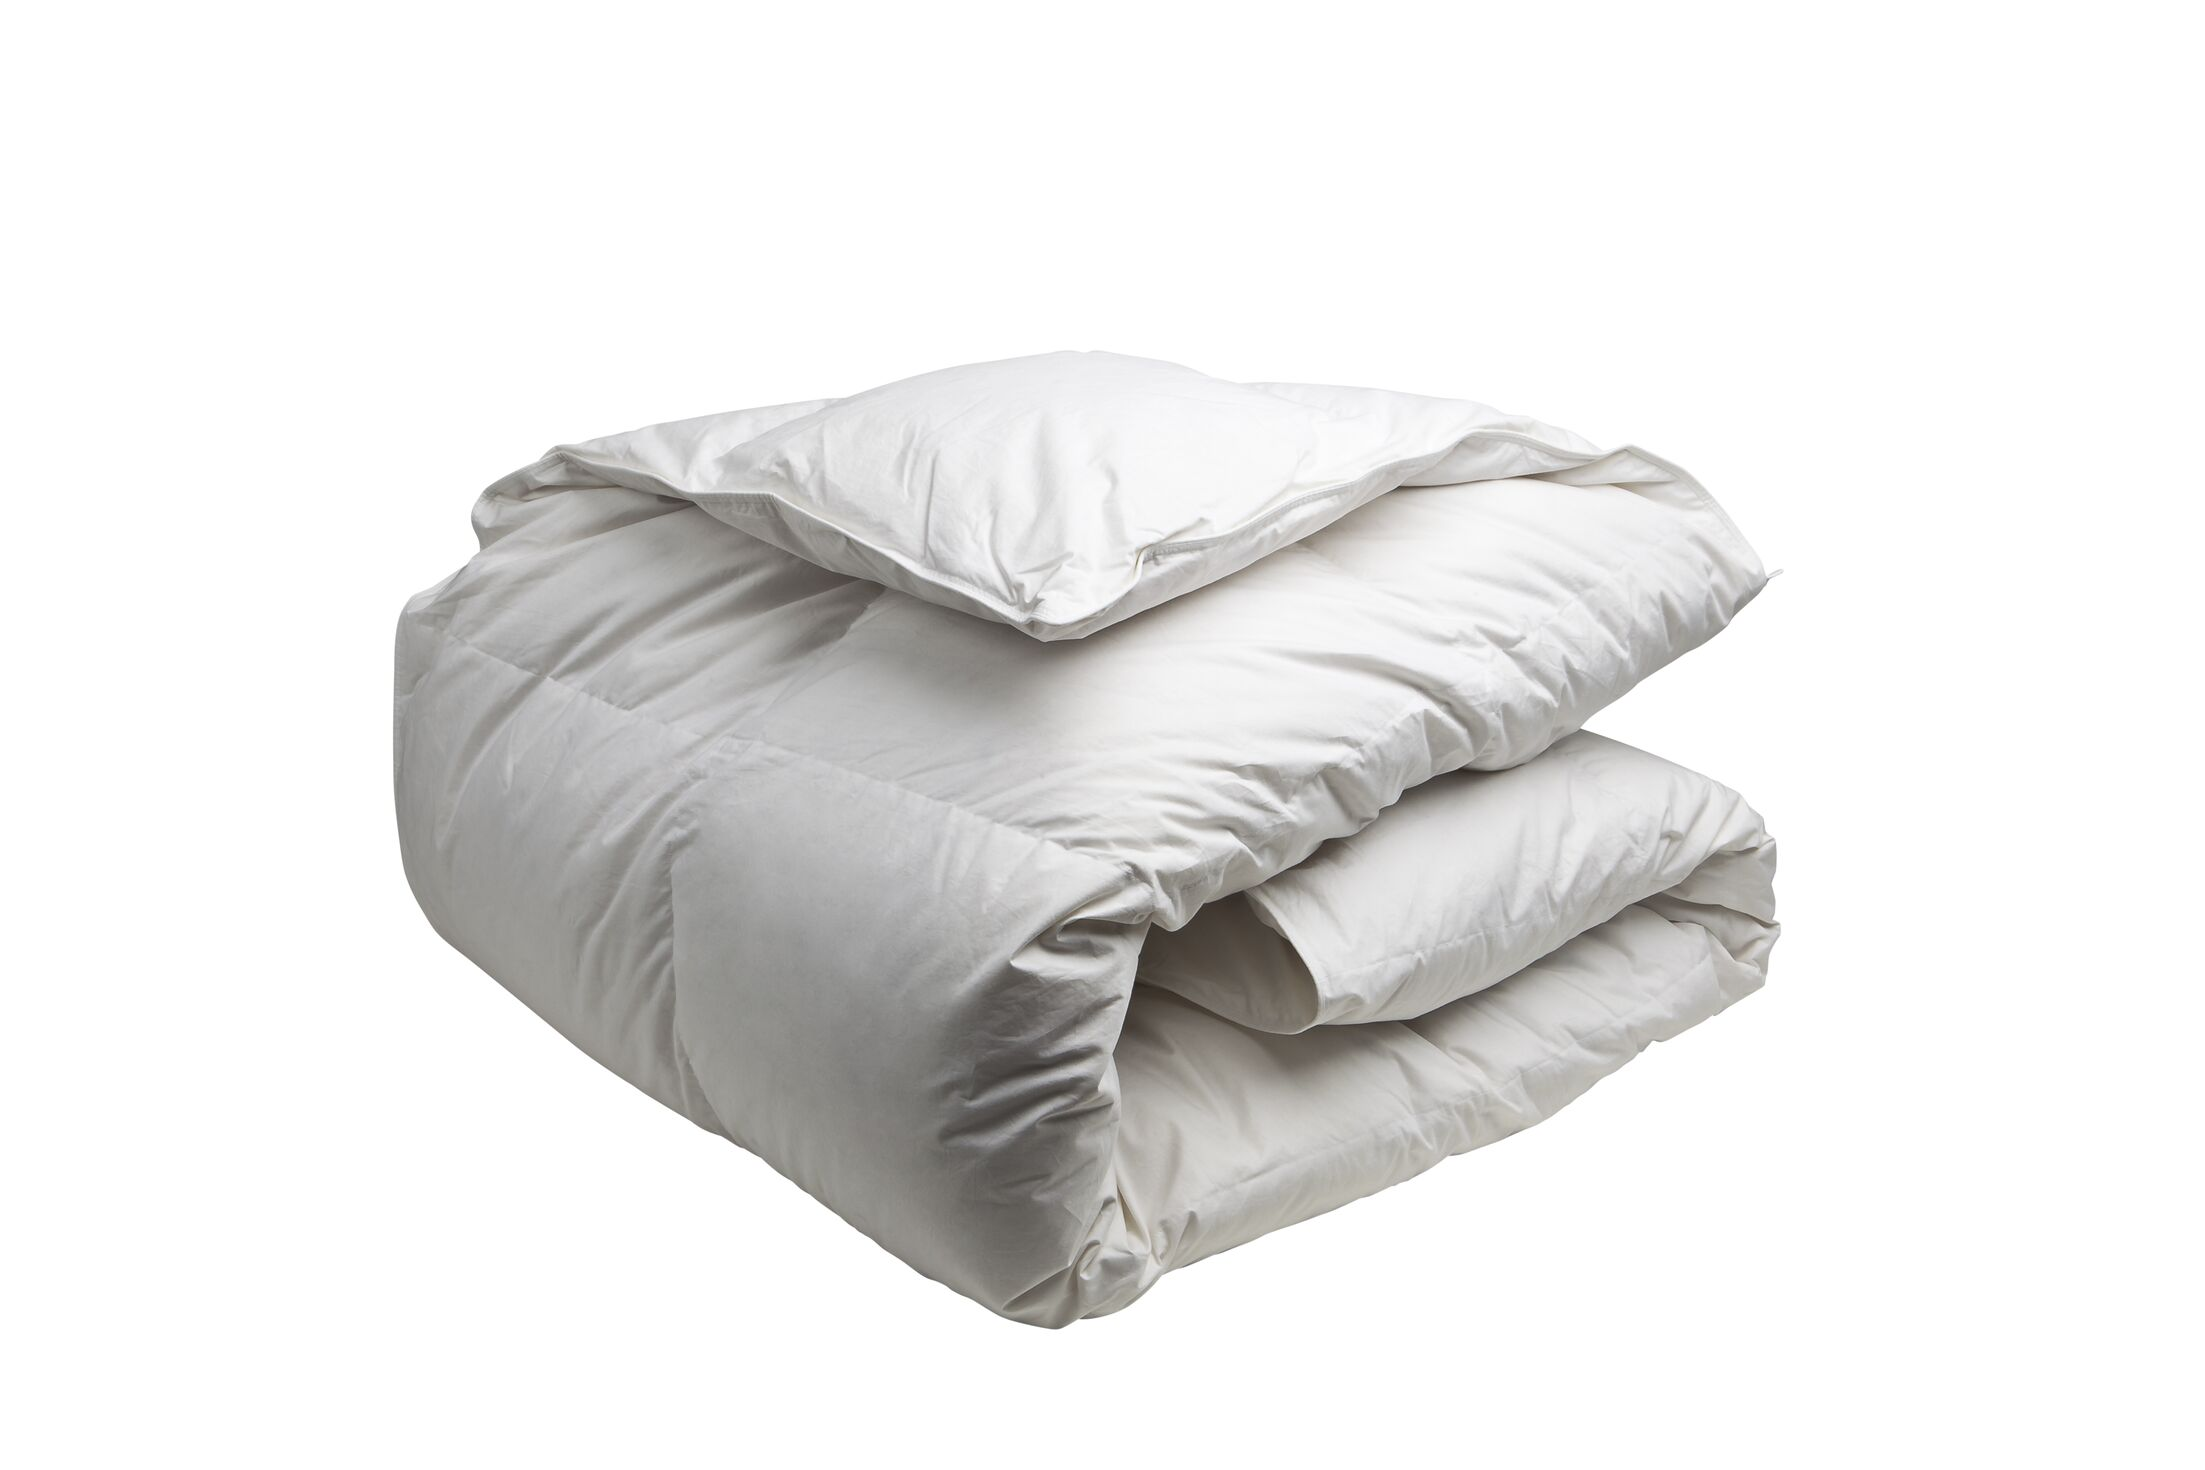 Down Duvet Insert Size: Queen, Weight: 30 oz, Fill Warmth: Regular